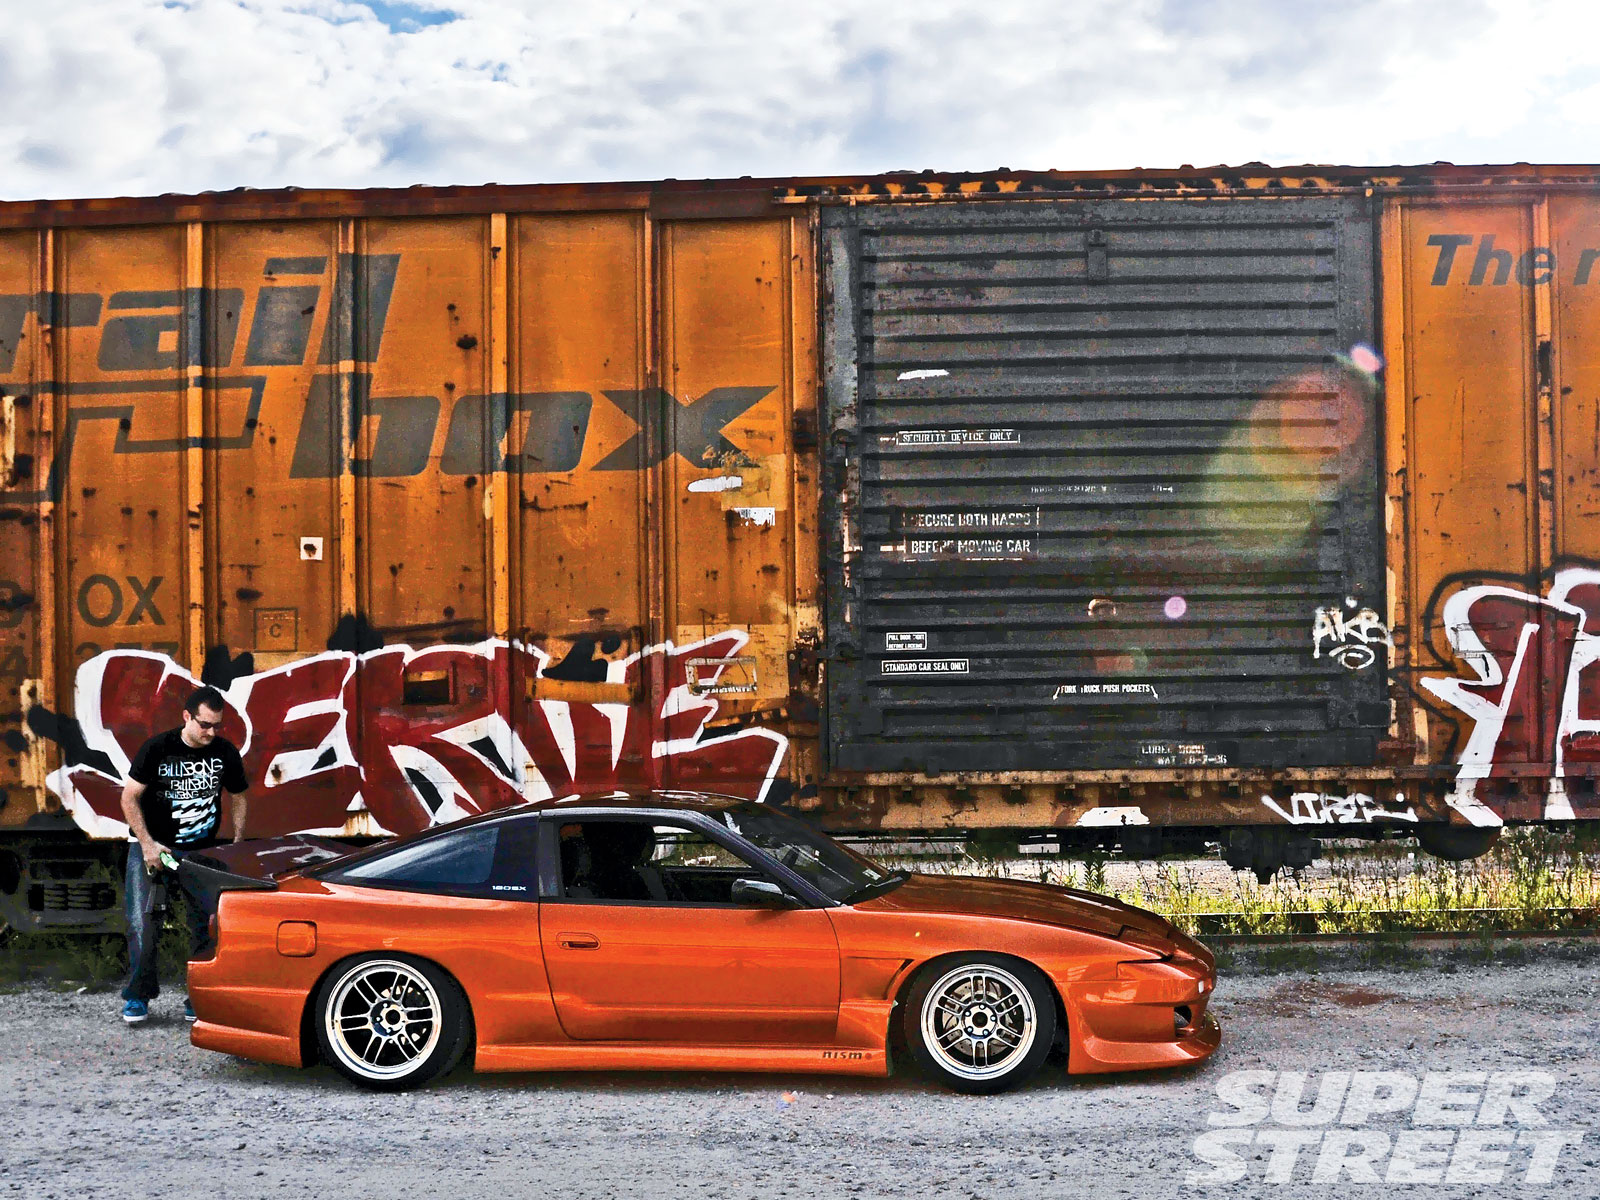 Nissan 240sx 1989 Review Amazing Pictures And Images Look At The Car 89 Wiring Diagram Photo 1